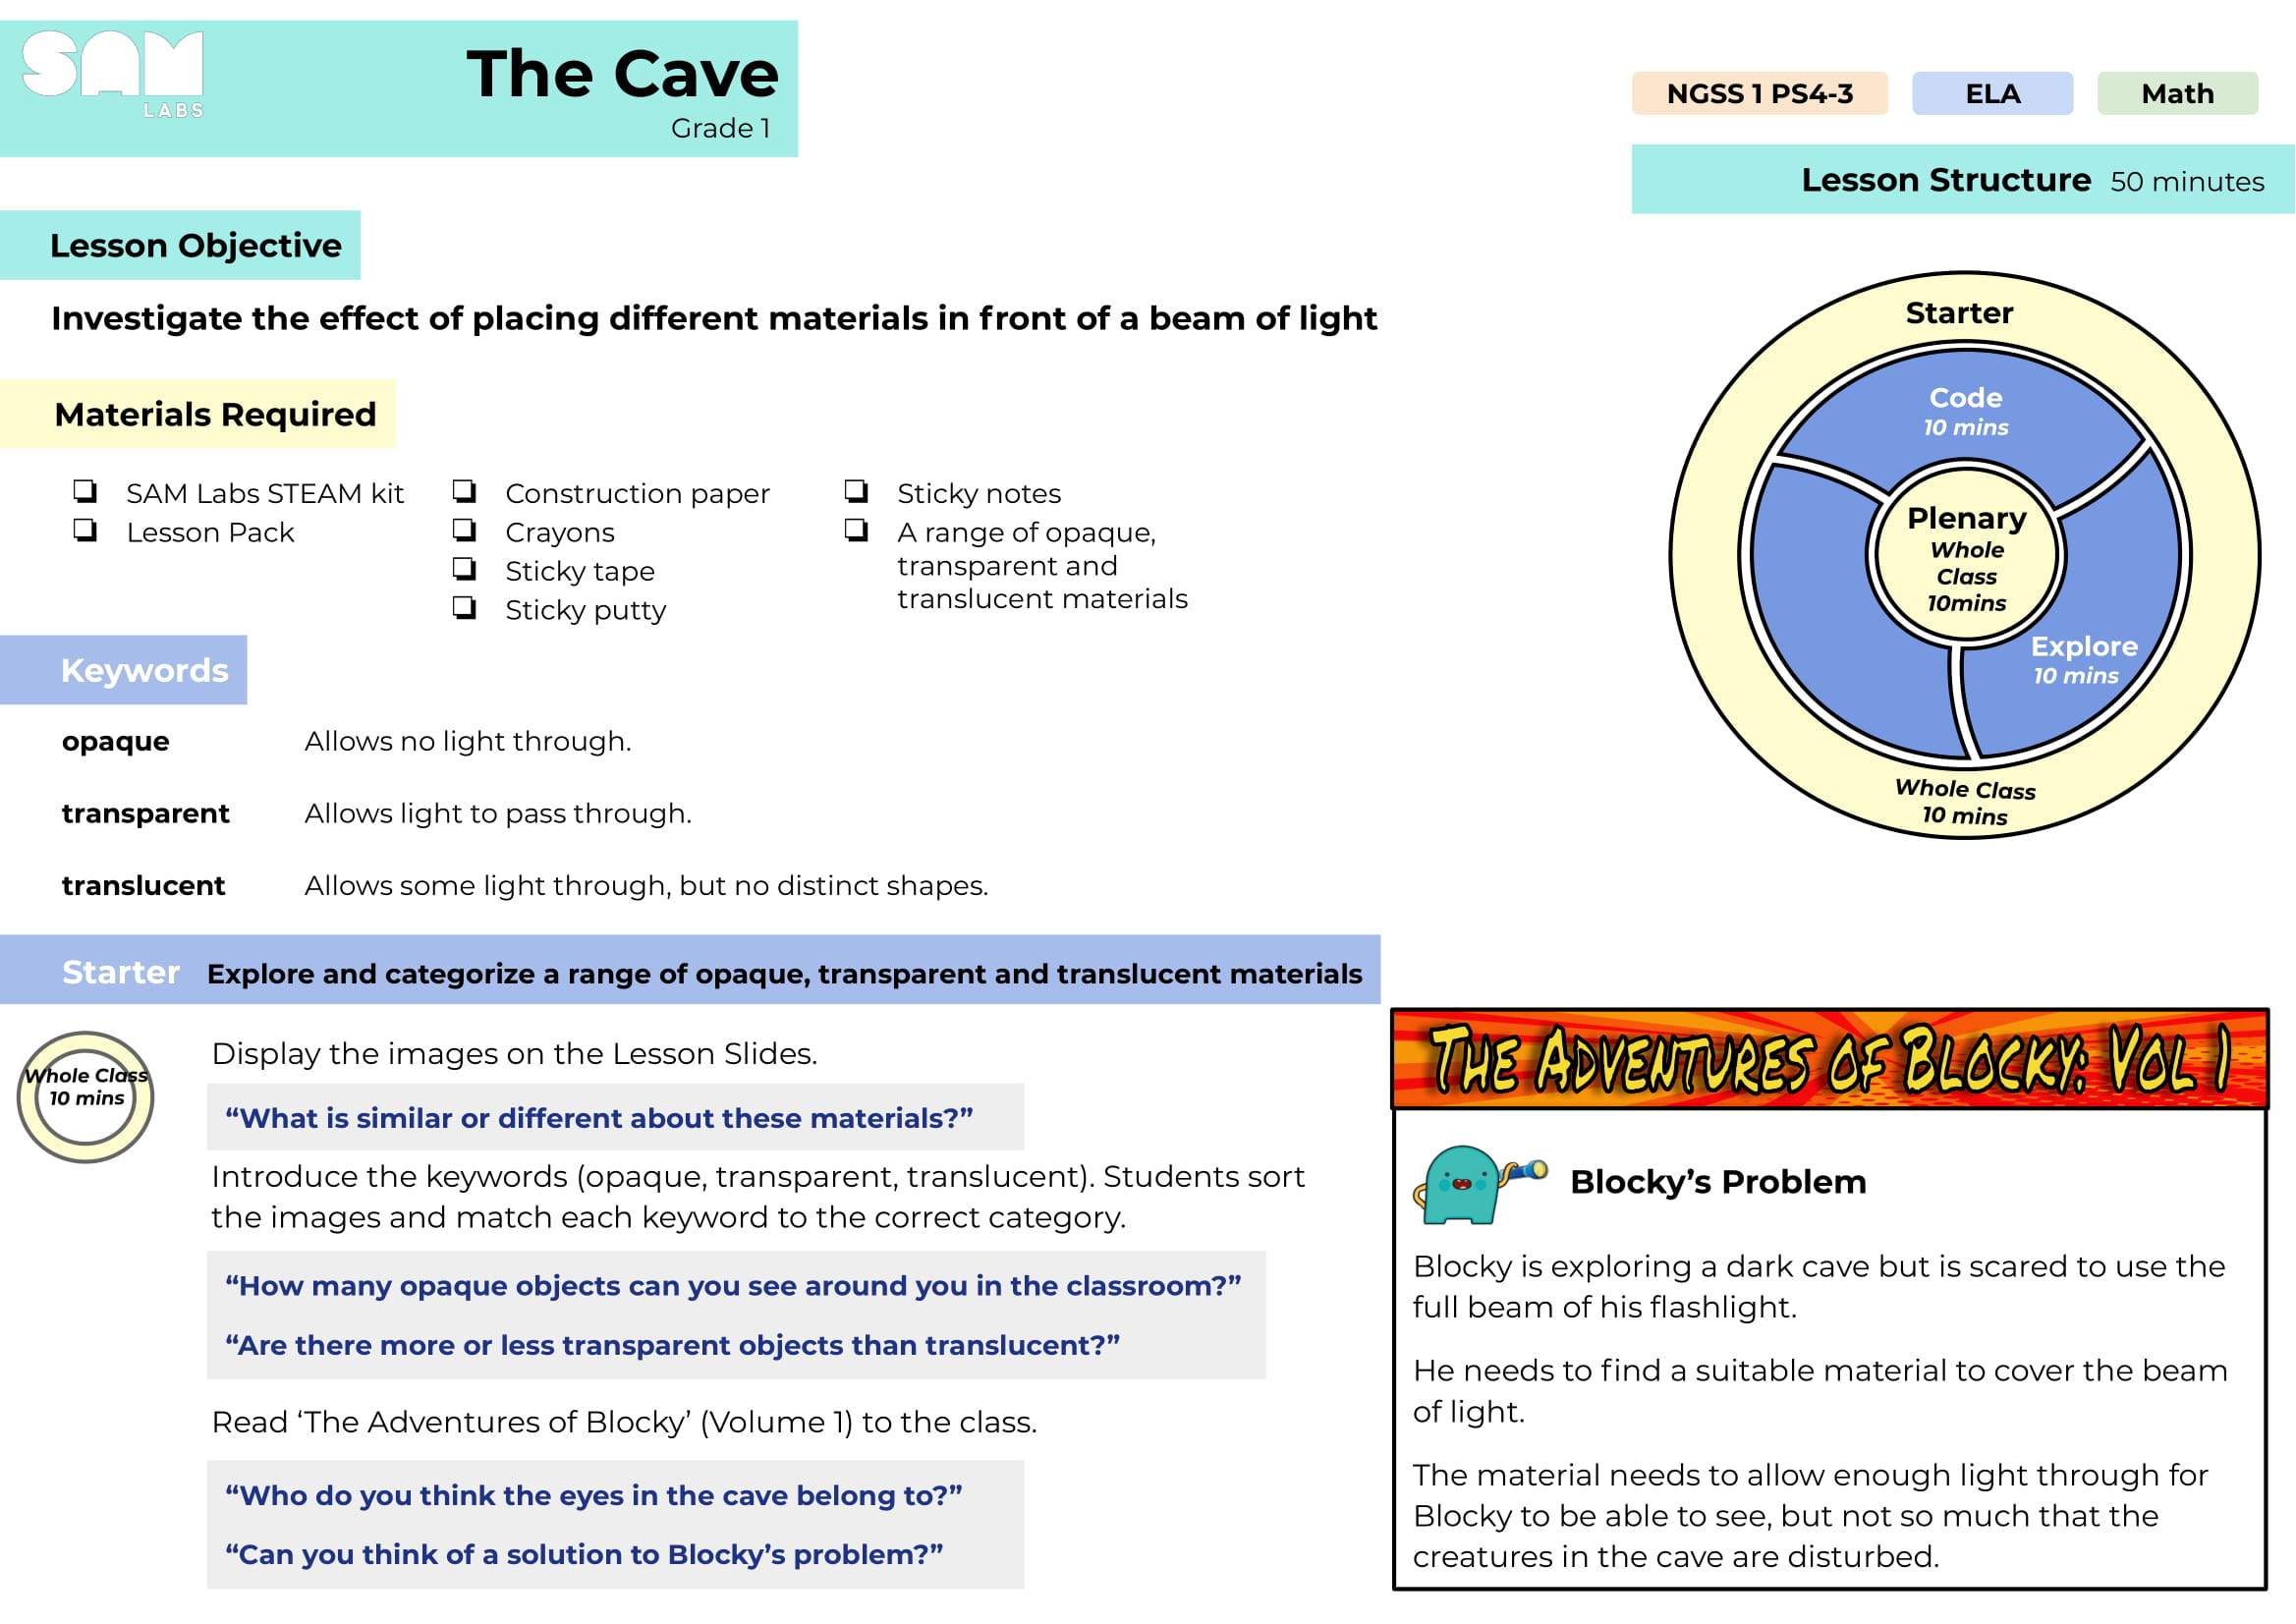 Grade_1_The_Cave_Lesson_Plan_WIP-1.jpg